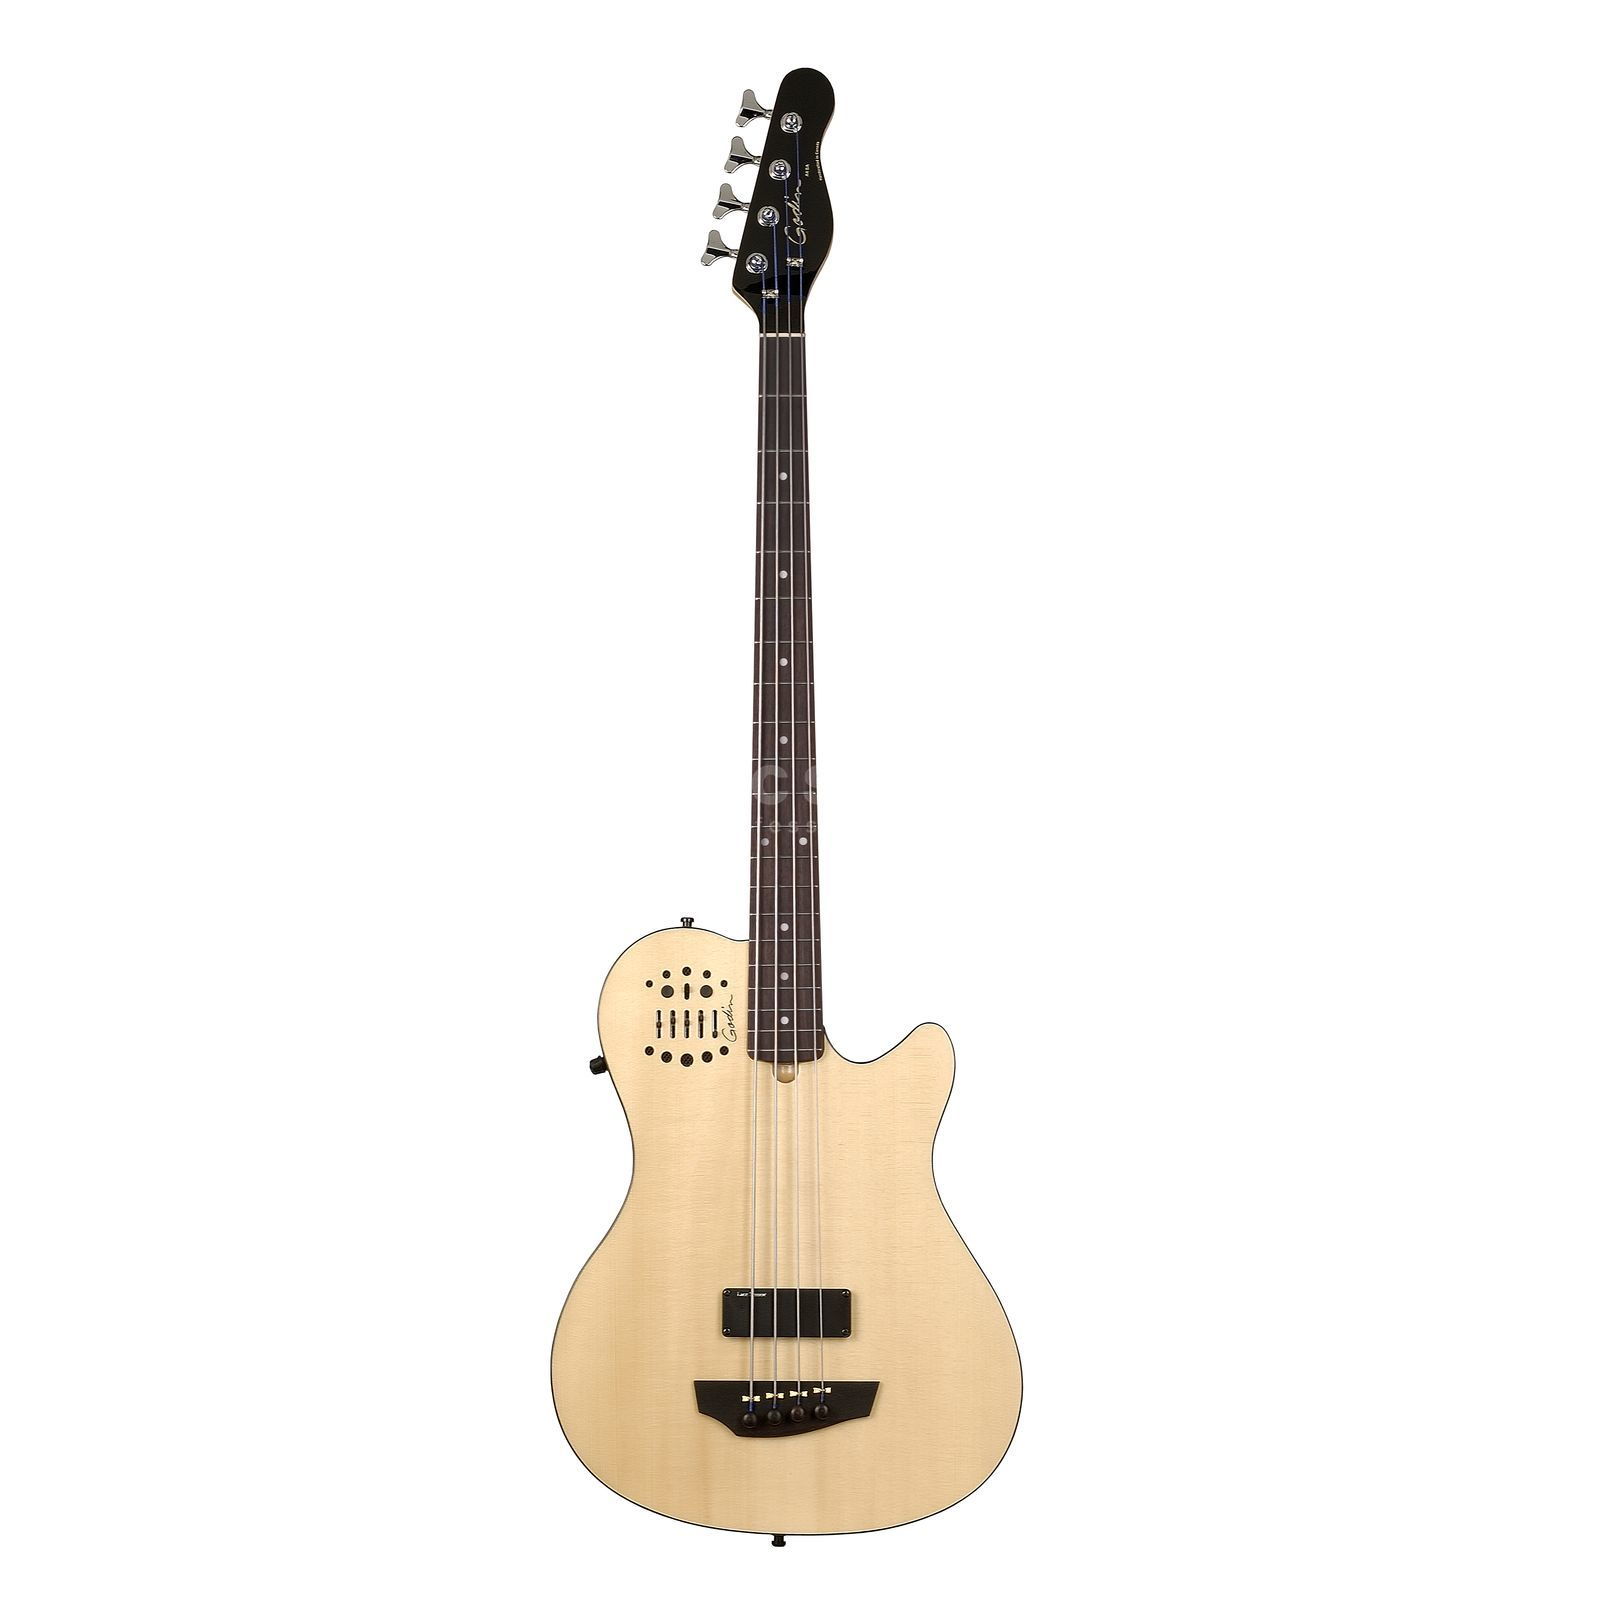 Godin A4 Ultra Fretted SA Natural Semi- Gloss Image du produit